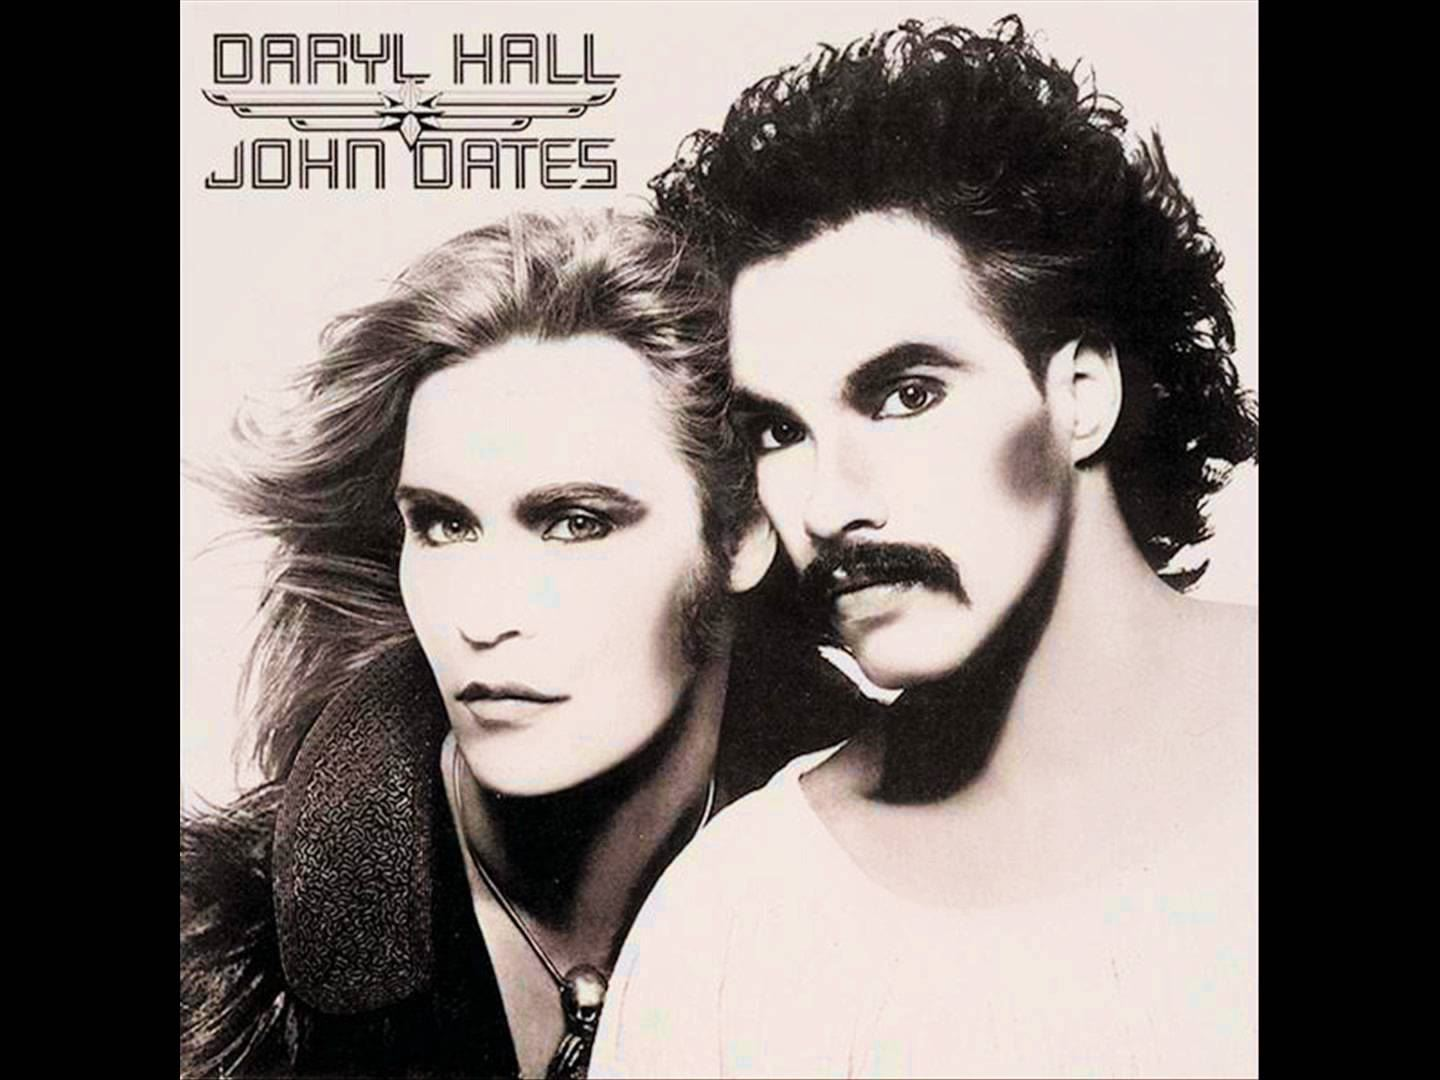 Hall & Oates album cover